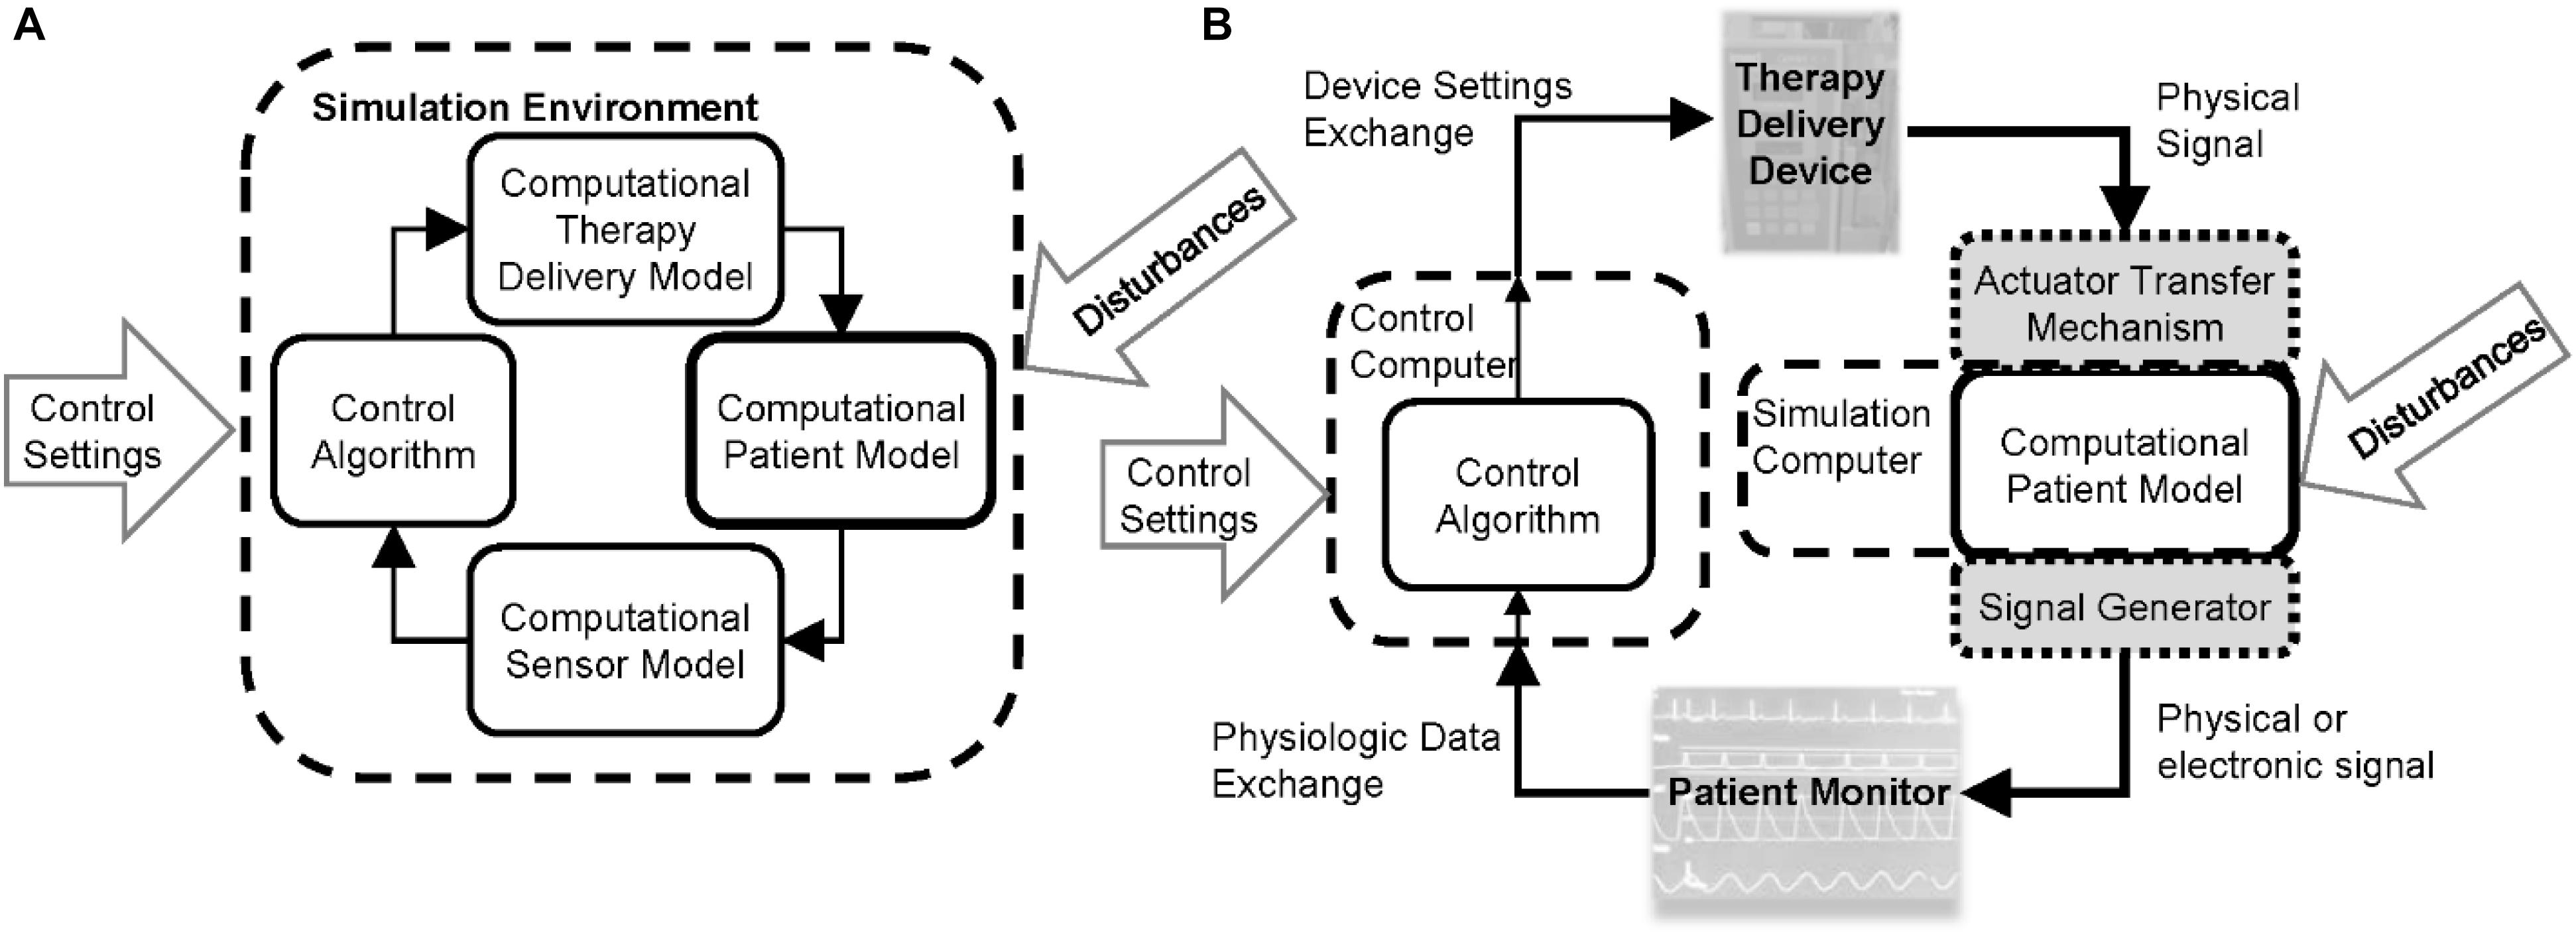 Frontiers   Credibility Evidence for Computational Patient